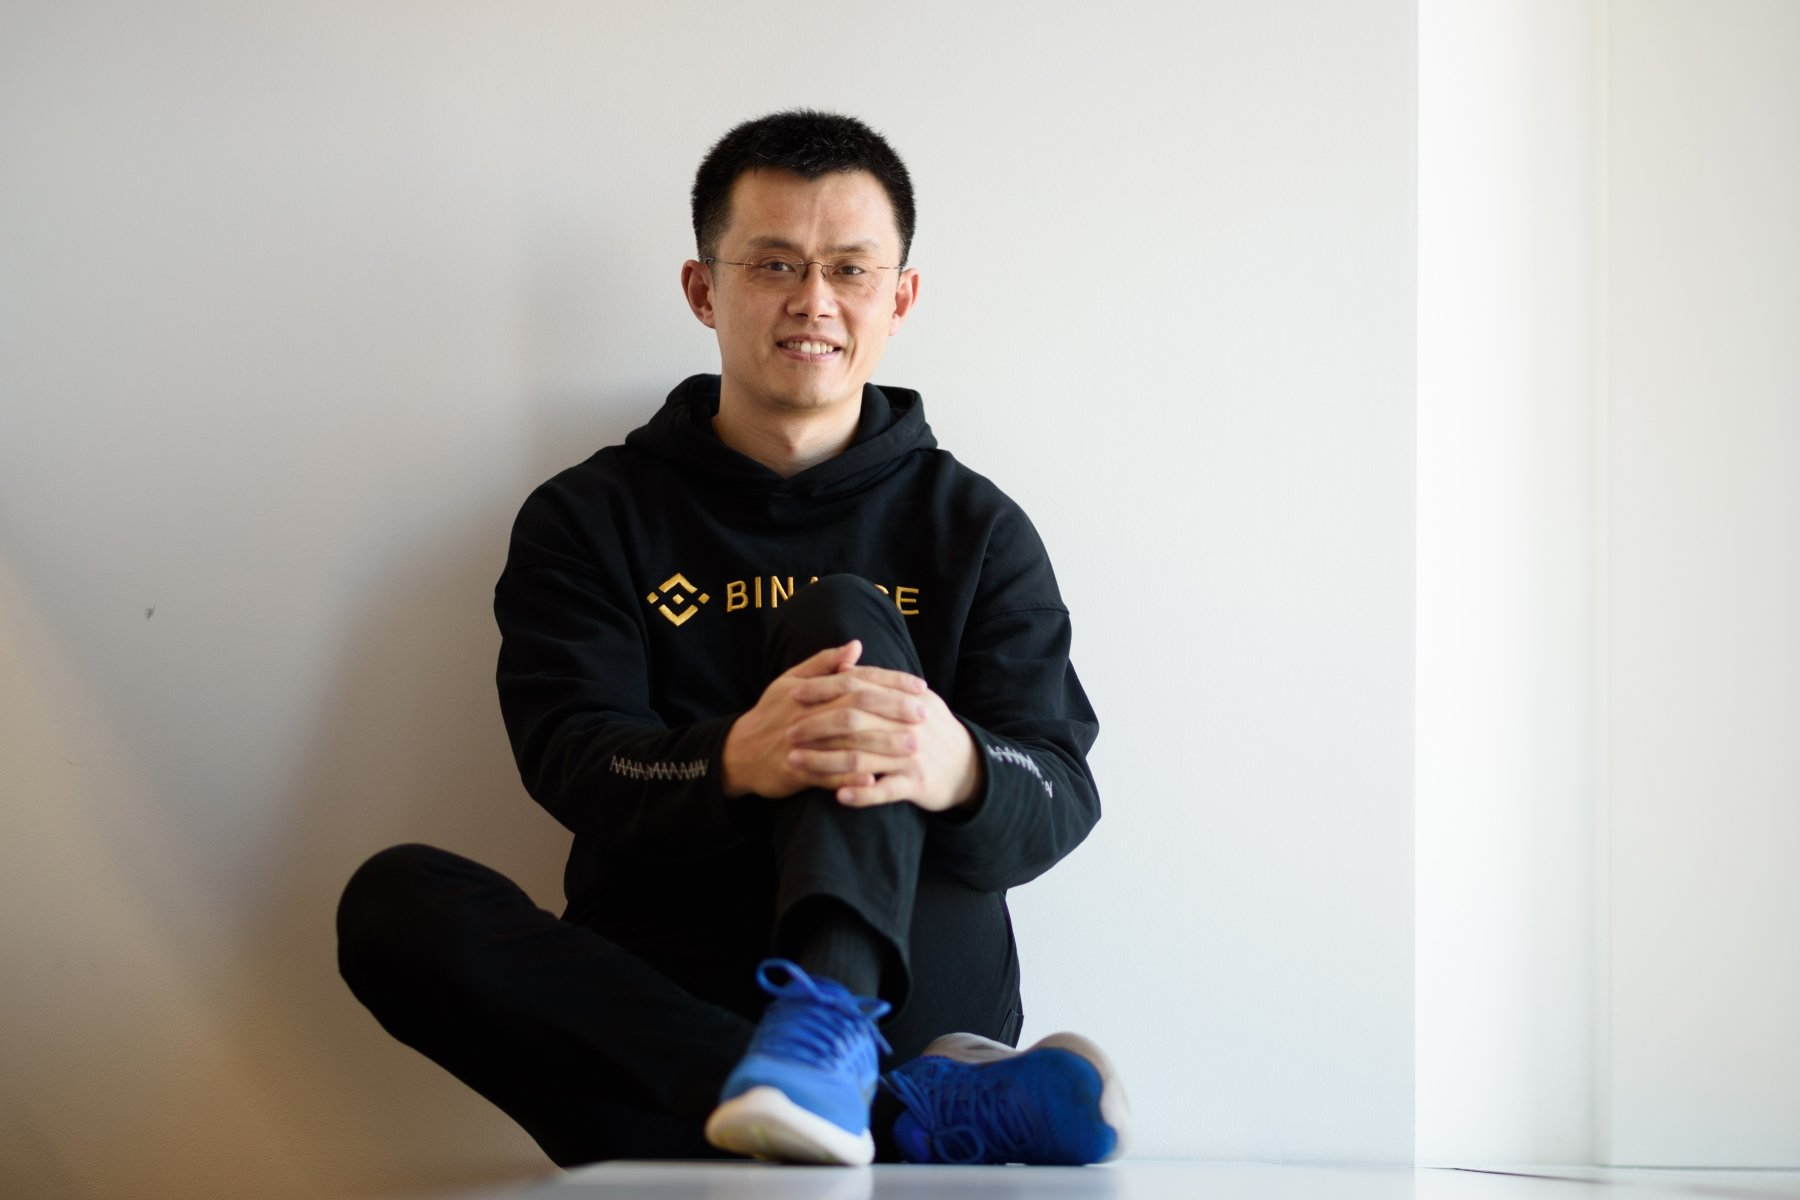 Binance blocheaza o parte a monedelor furate din Cryptopia